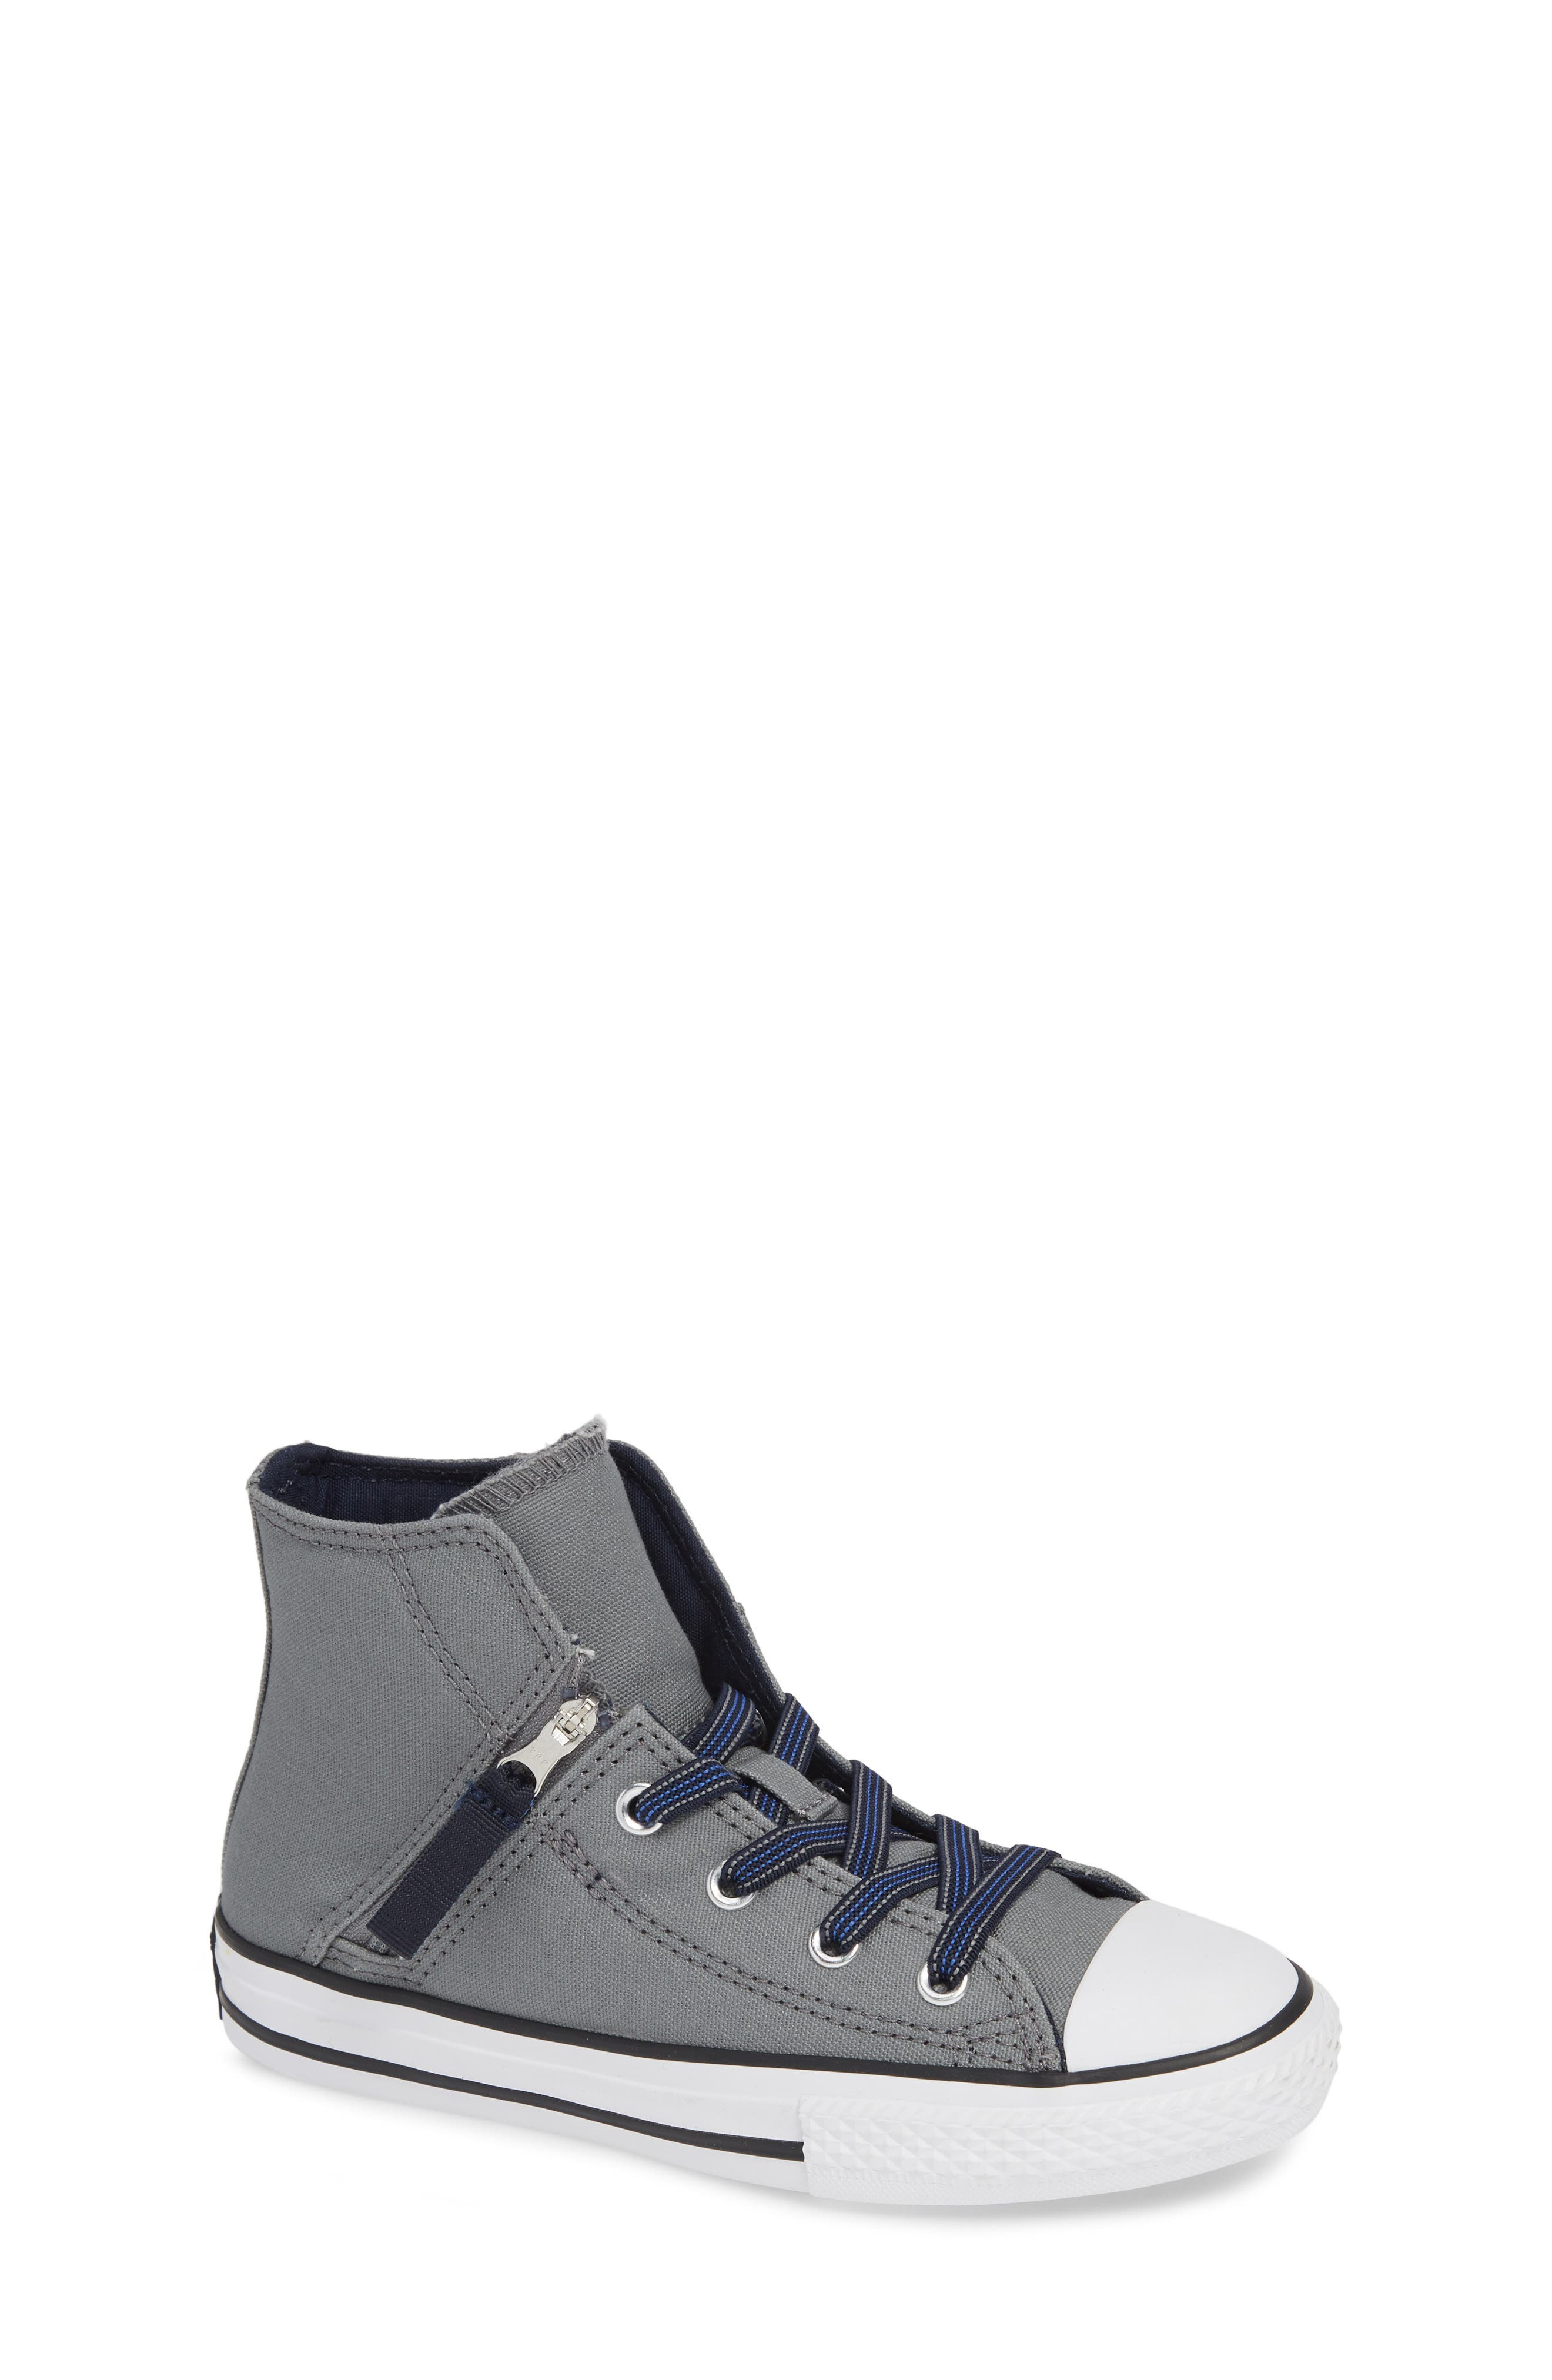 childs high top converse tennis shoes